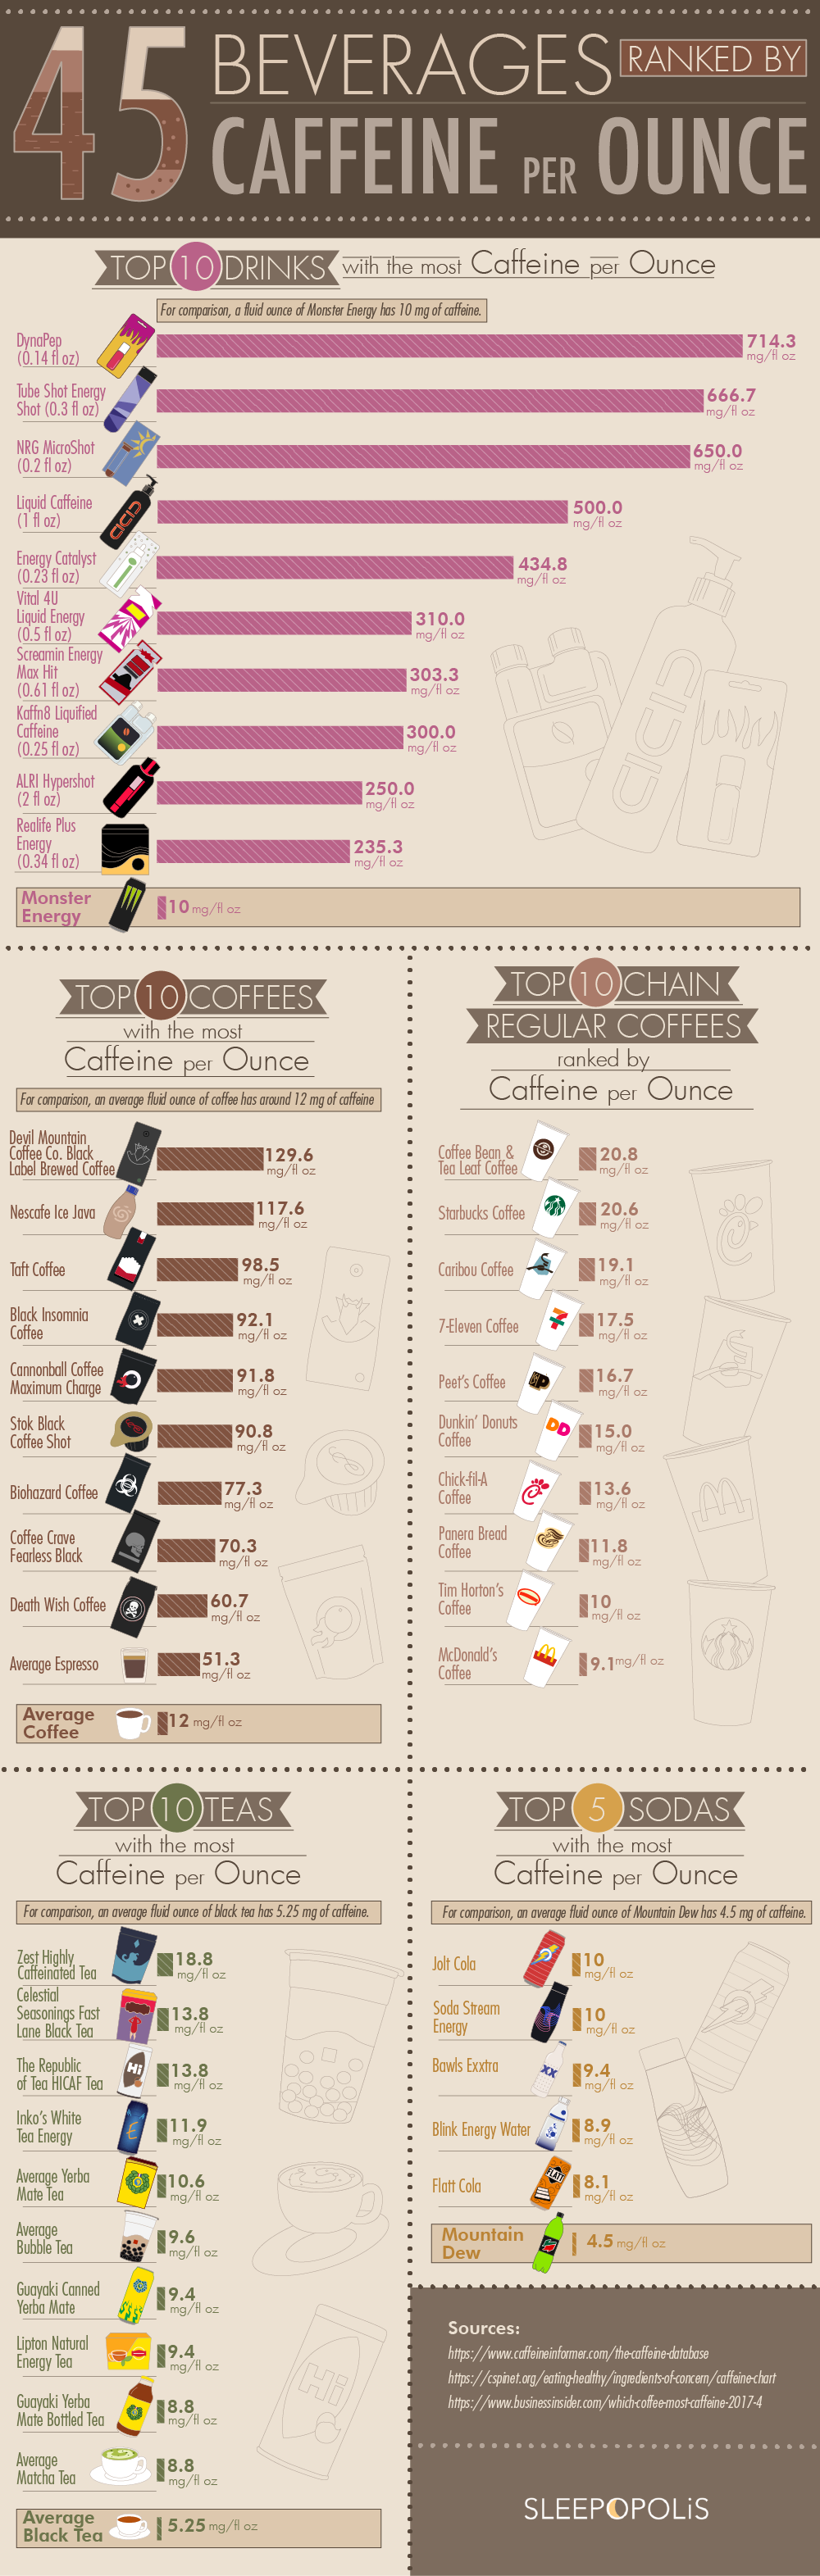 How Much is Too Much: Per-Ounce Caffeine Measures of 45 Beverages - Infographic